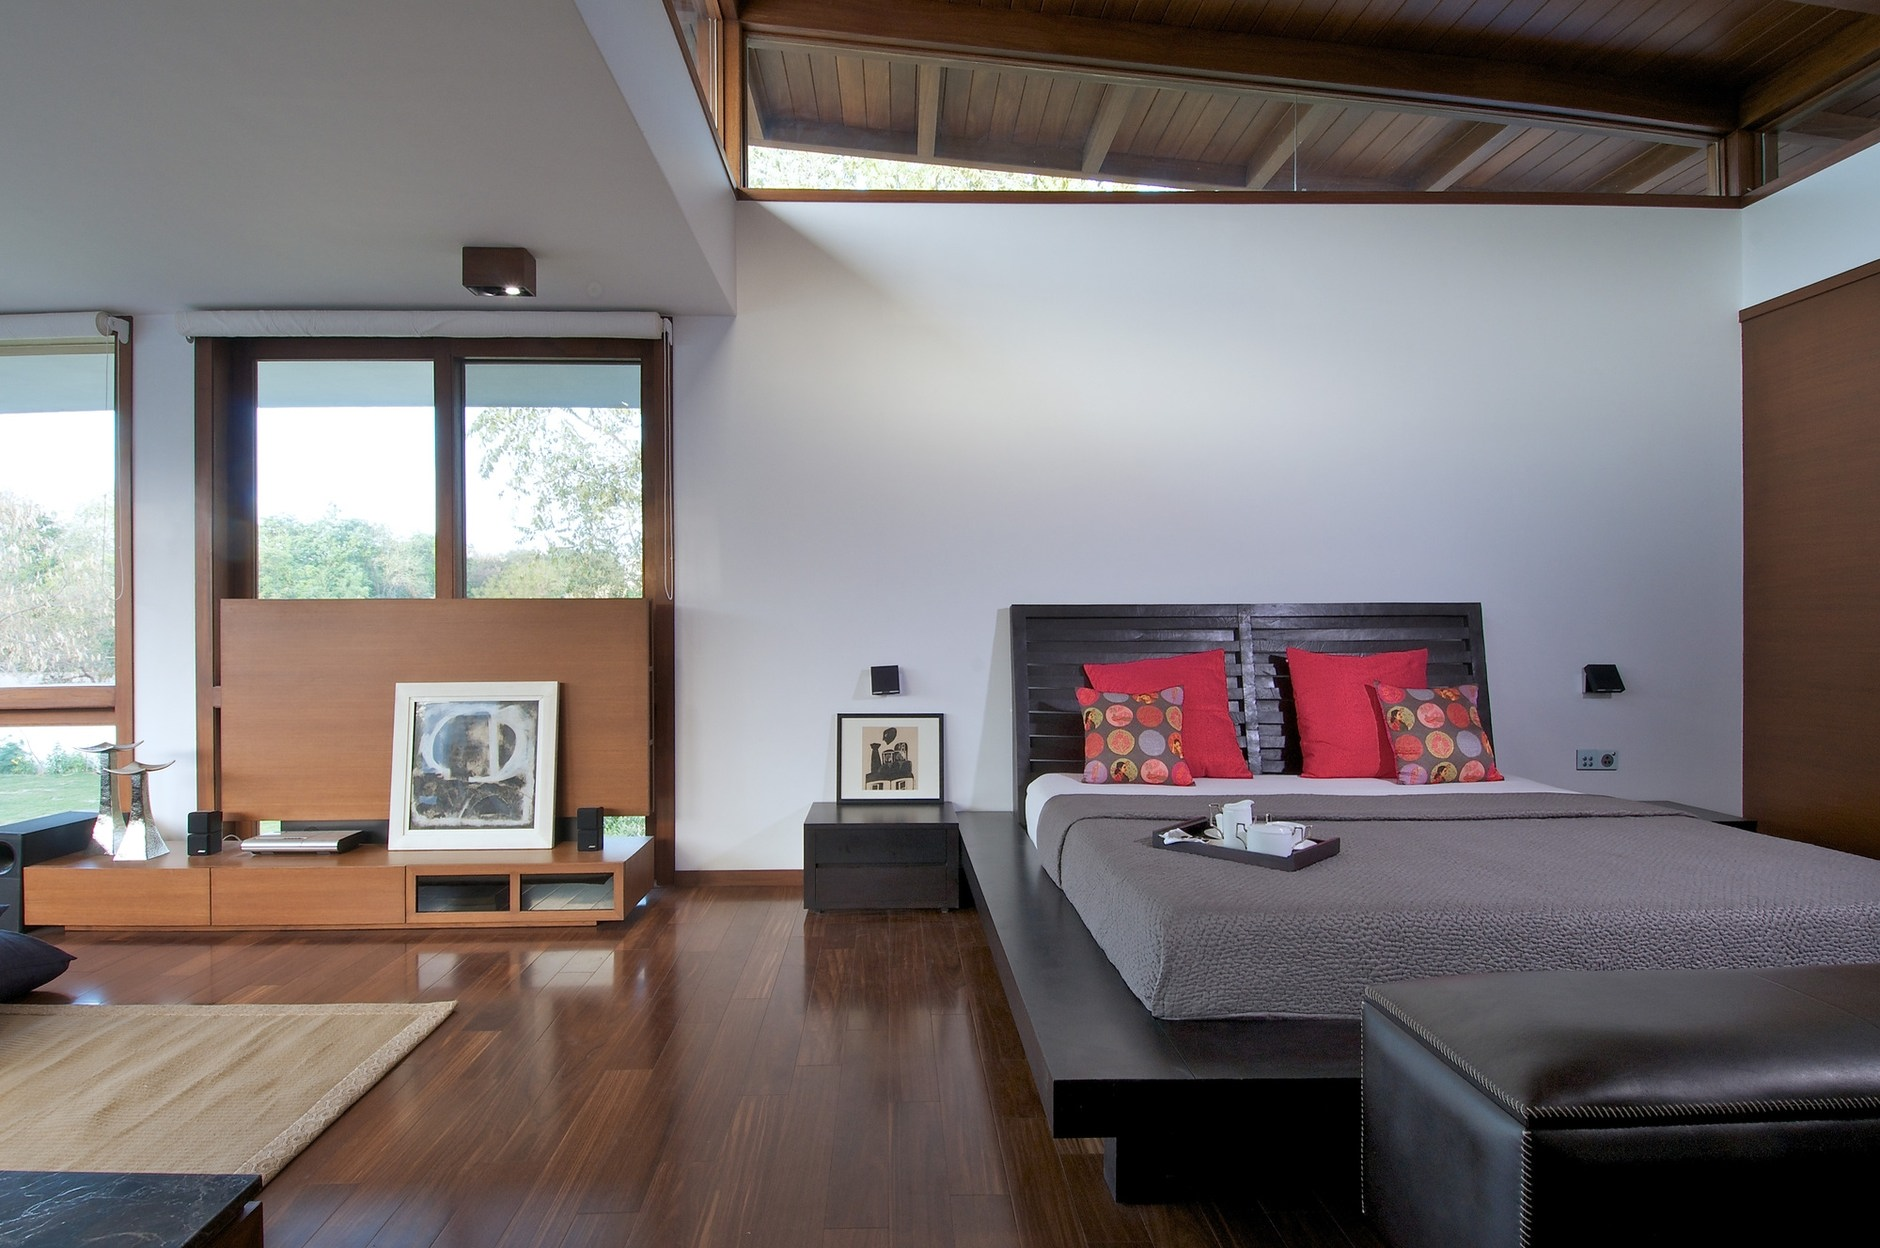 The courtyard house by hiren patel architects karmatrendz - Maison courtyard hiren patel architects ...